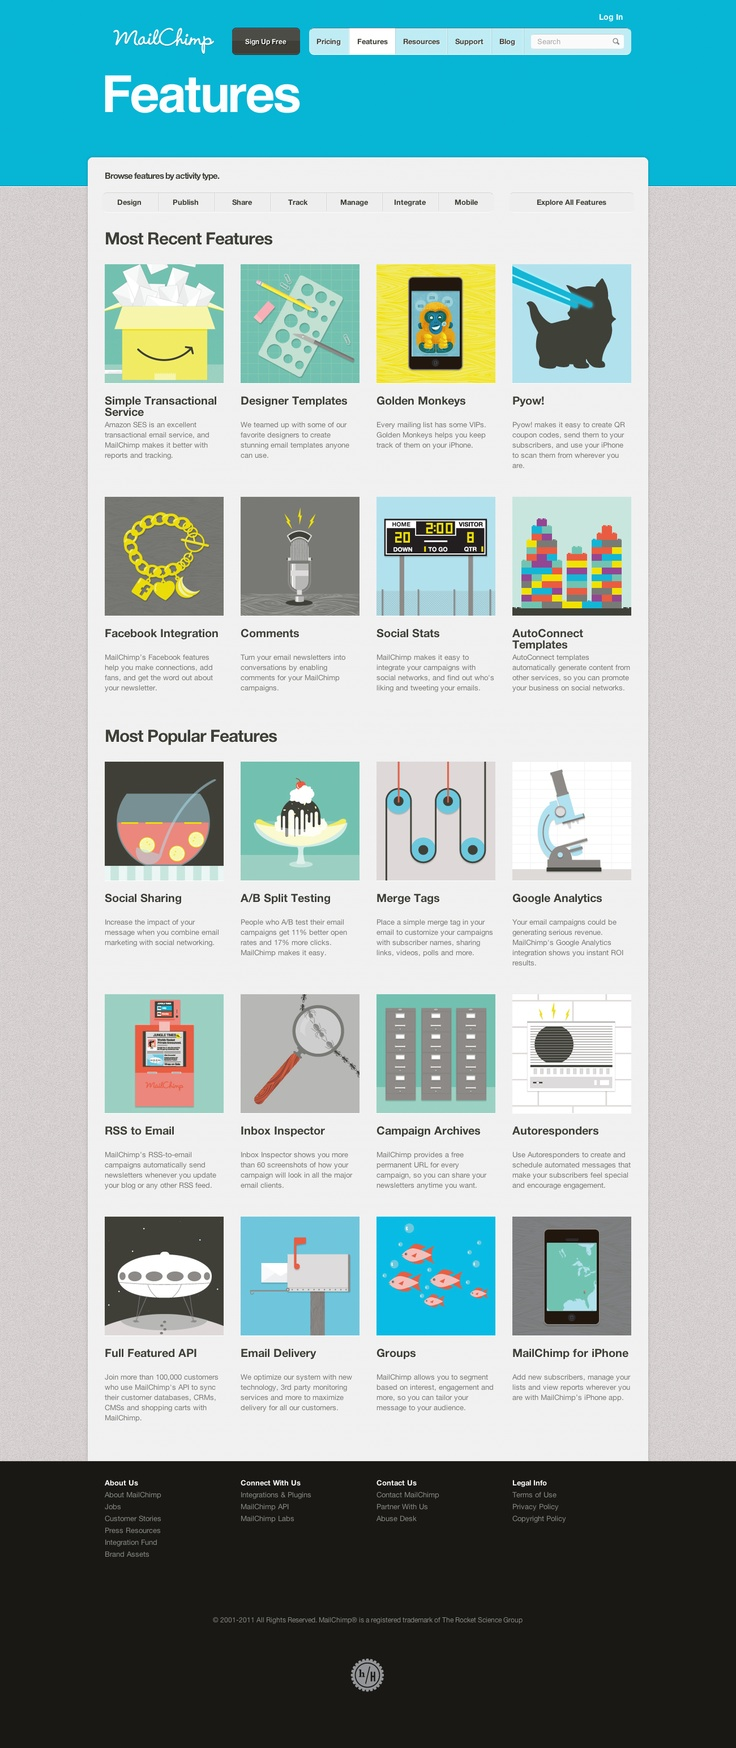 12 best design trends mailchimp images on pinterest design trends mailchimps features page fandeluxe Image collections